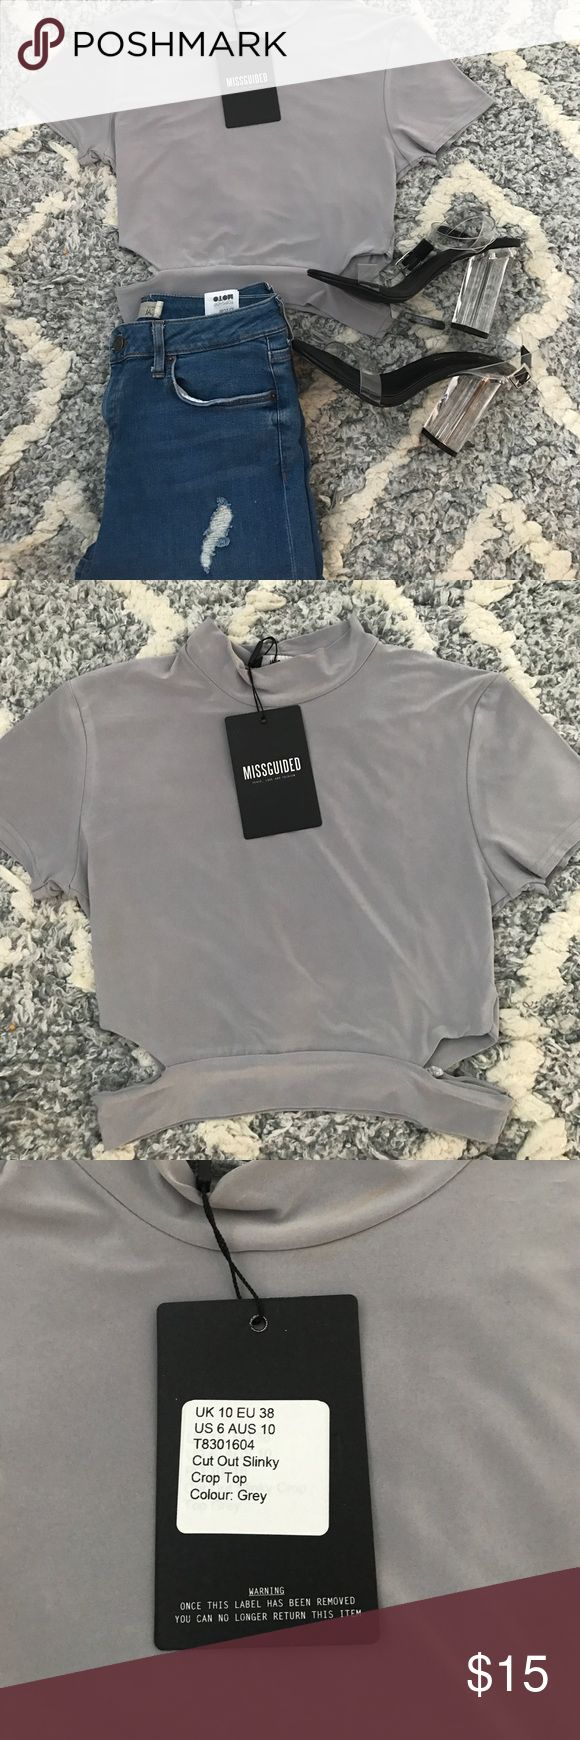 Sexy Missguided top Sexy silver grey missguided top. Depending on how high waisted hour jeans are this top could show your stomach or not. Two cut outs on each side. No damage never been worn Missguided Tops Crop Tops